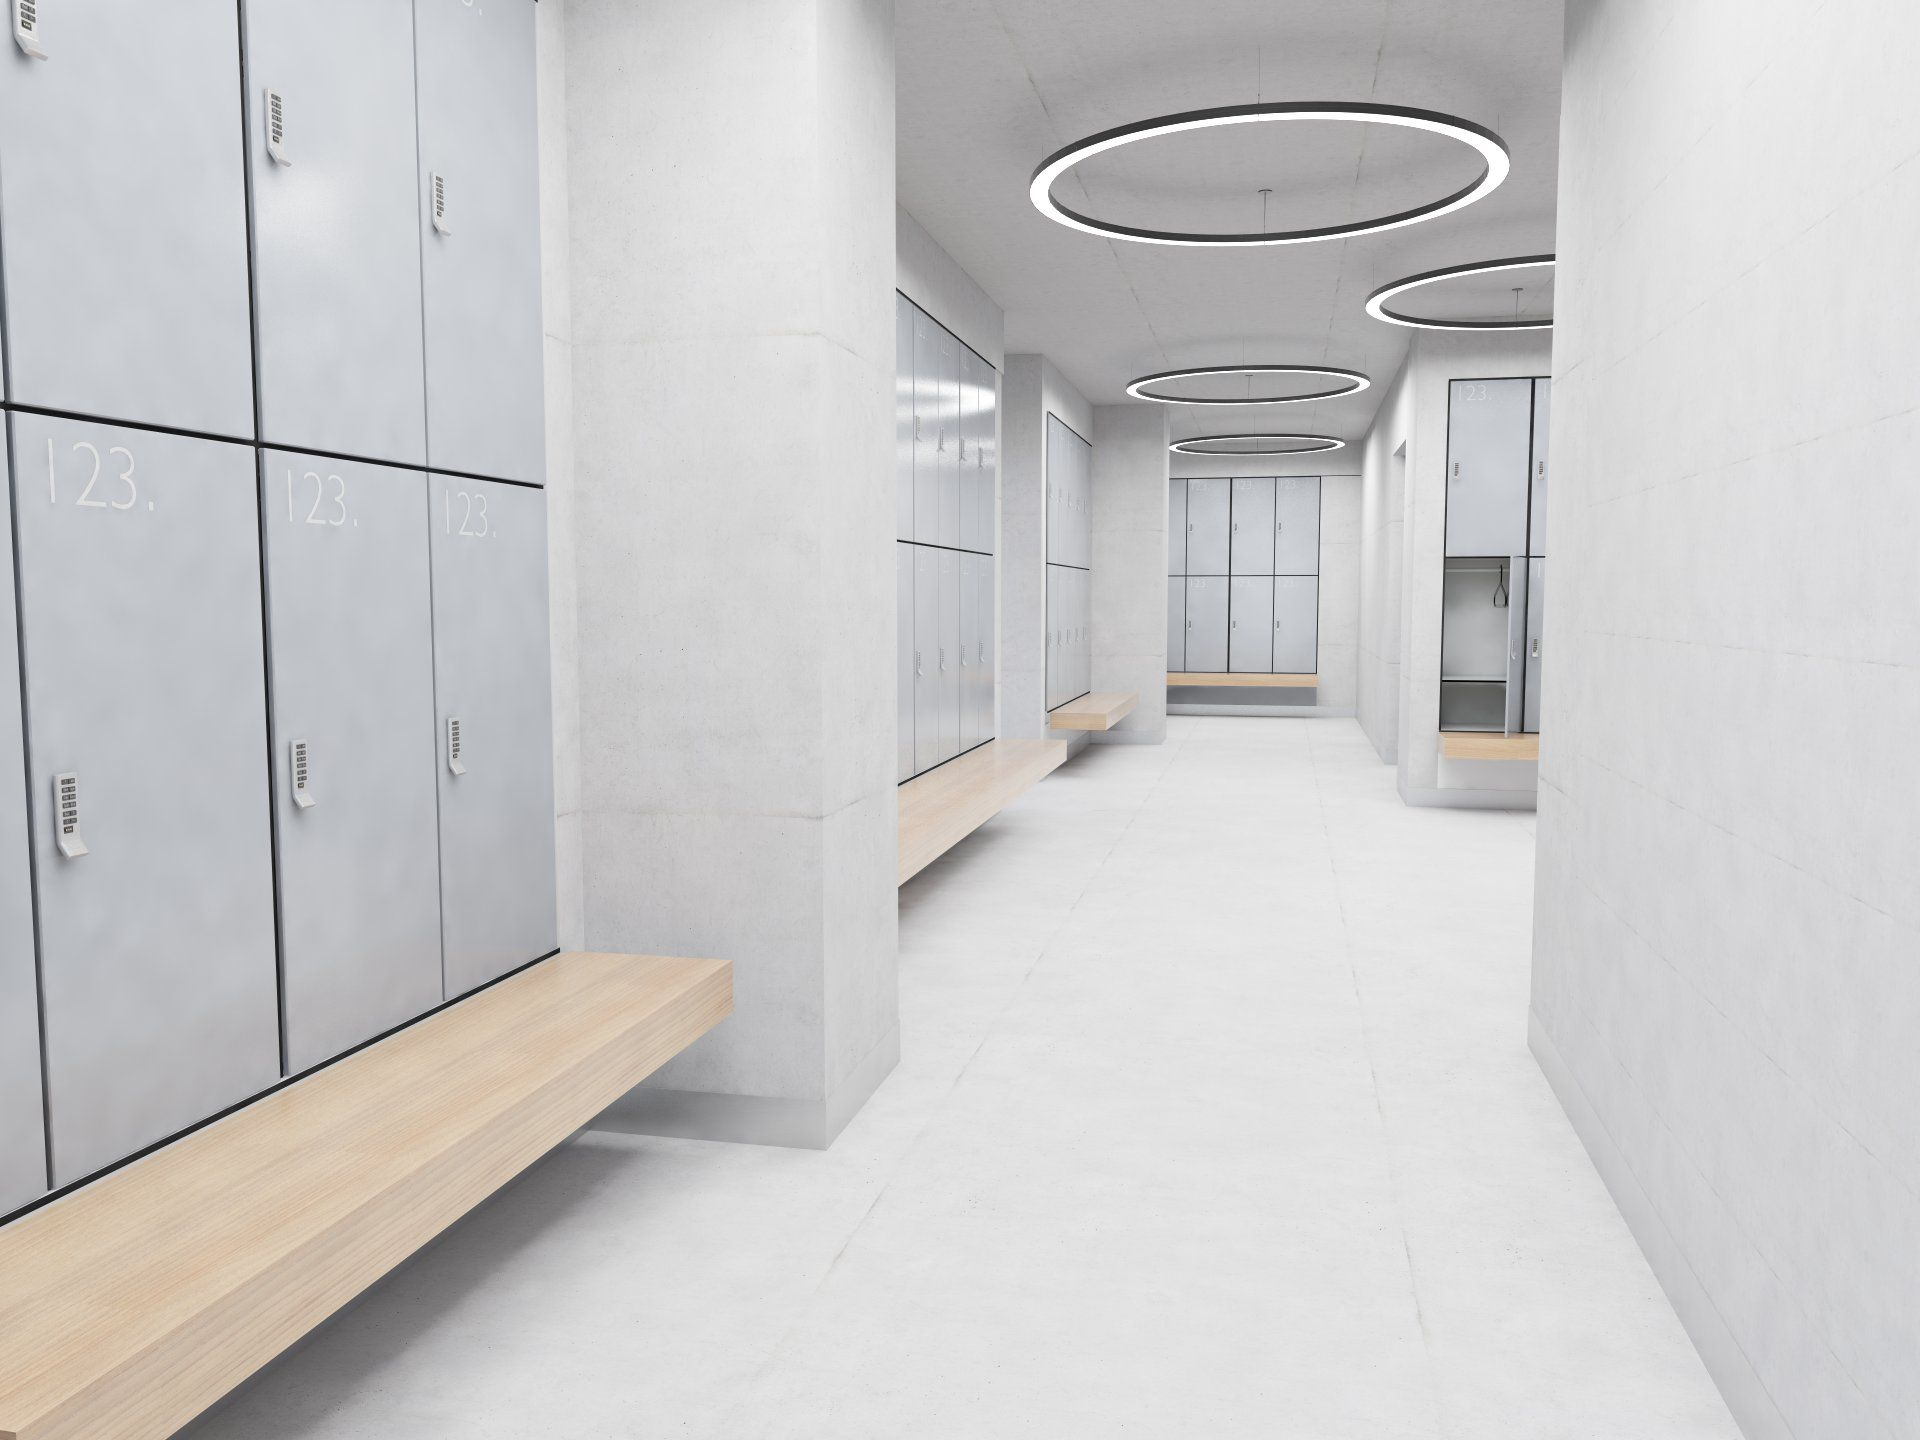 Phenolic Lockers From Line Hebe Hpl Are Dedicated To